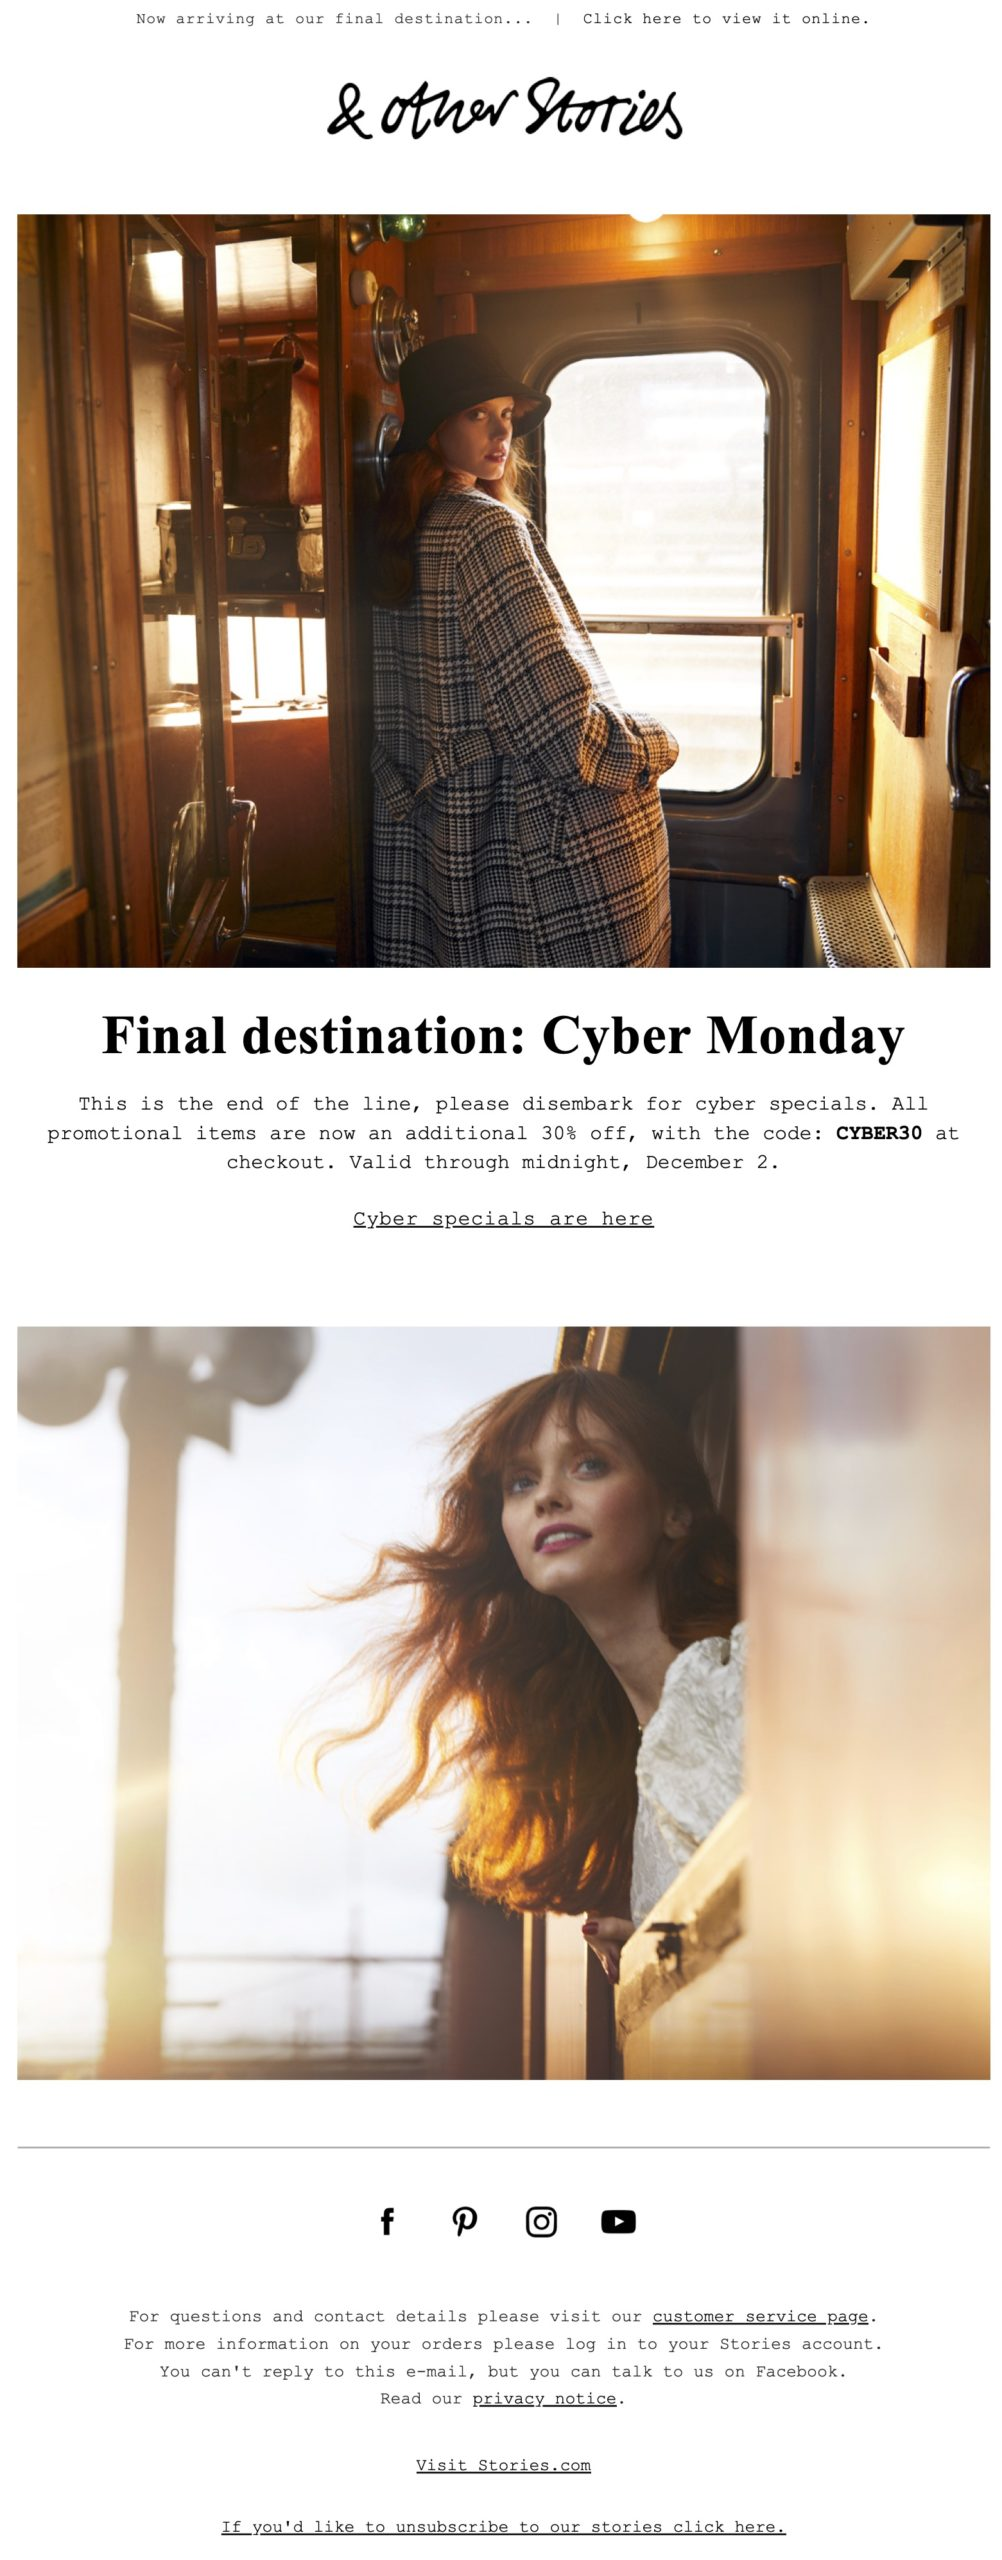 Example of a simple Cyber Monday email from & Other Stories.